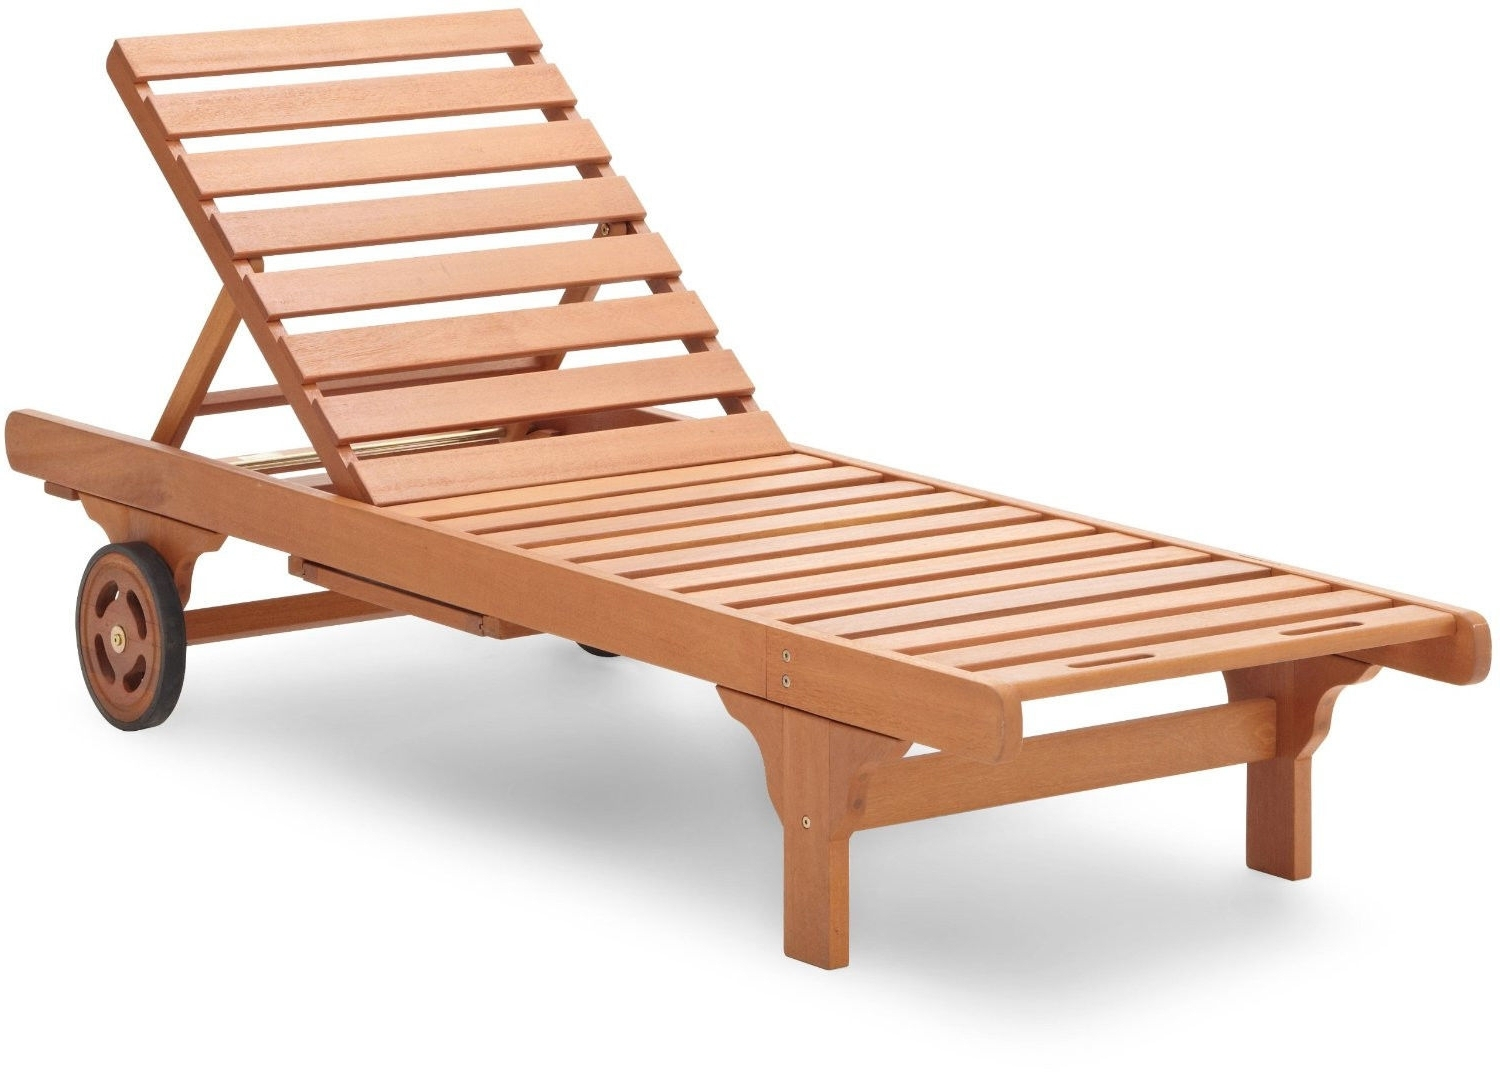 Most Current Wood Chaise Lounge Chairs • Lounge Chairs Ideas Inside Wood Chaise Lounge Chairs (View 2 of 15)